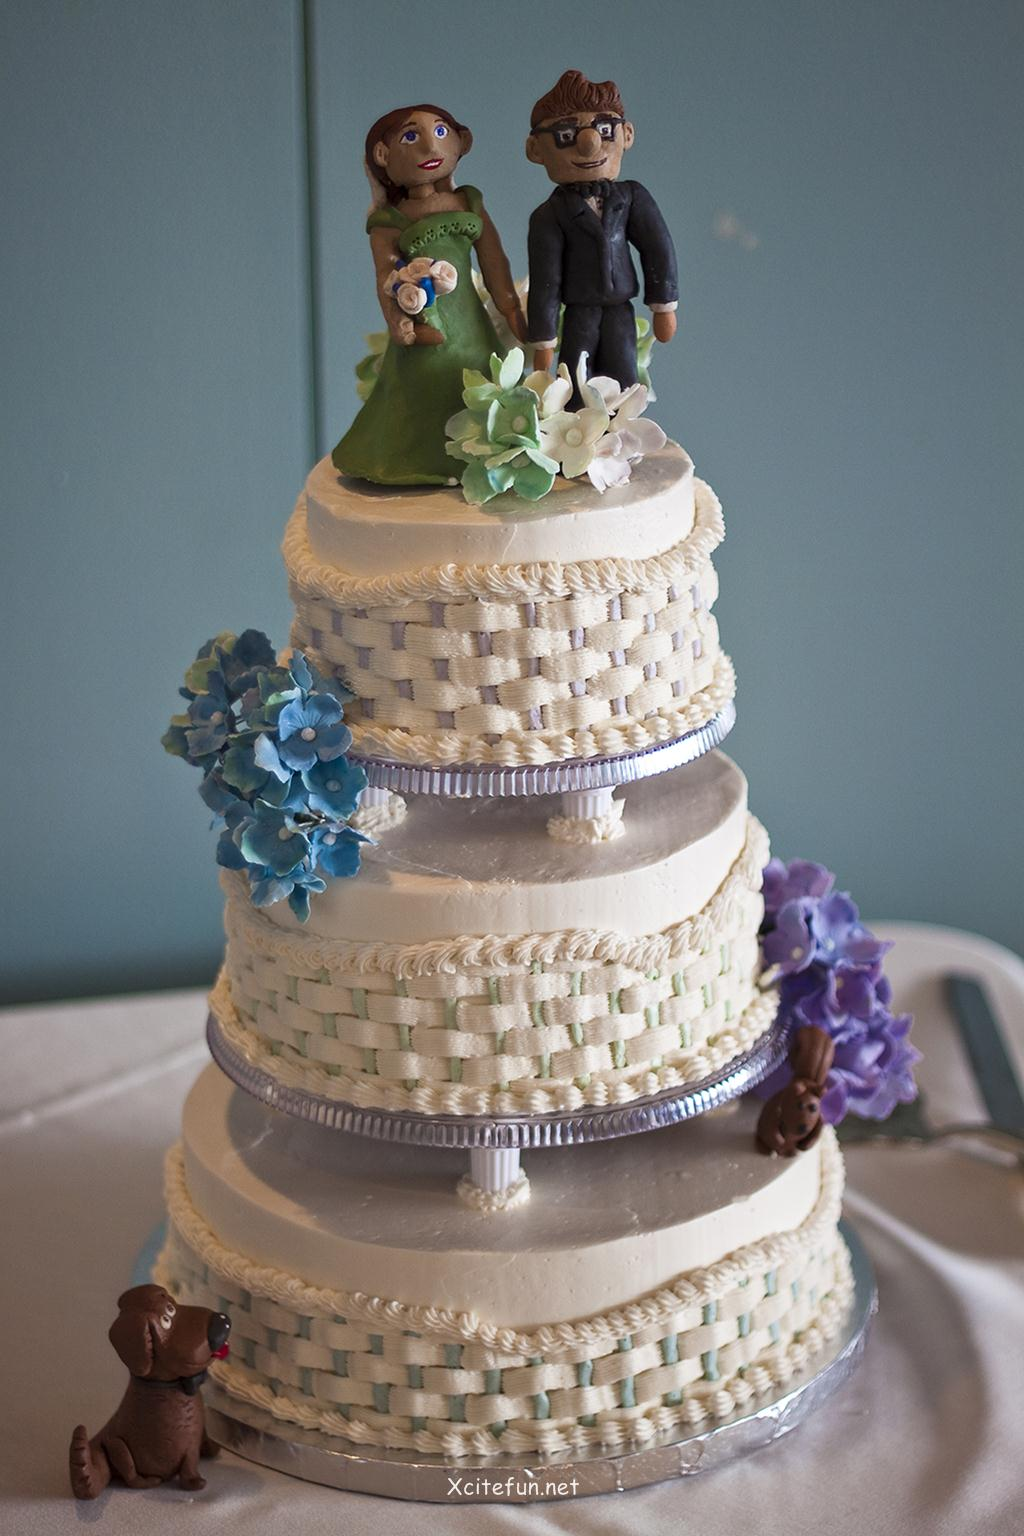 Cake Decorating Ideas For Wedding Simple : Wedding Cakes - Decorating Ideas - XciteFun.net